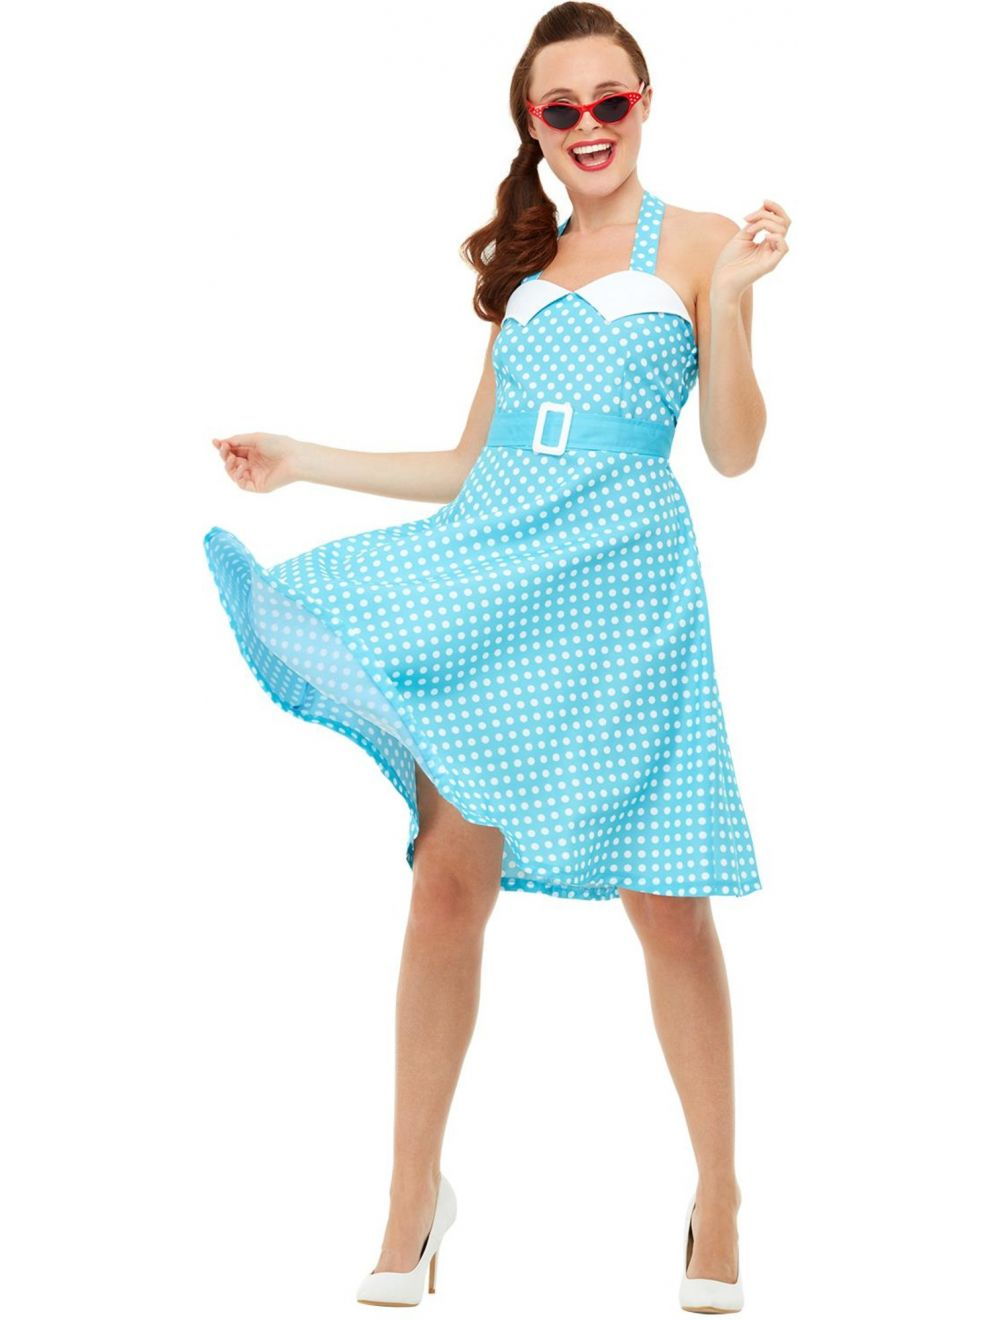 c9b3a4dbd791e Adult 50s Pin Up Costume - 47785 - Fancy Dress Ball